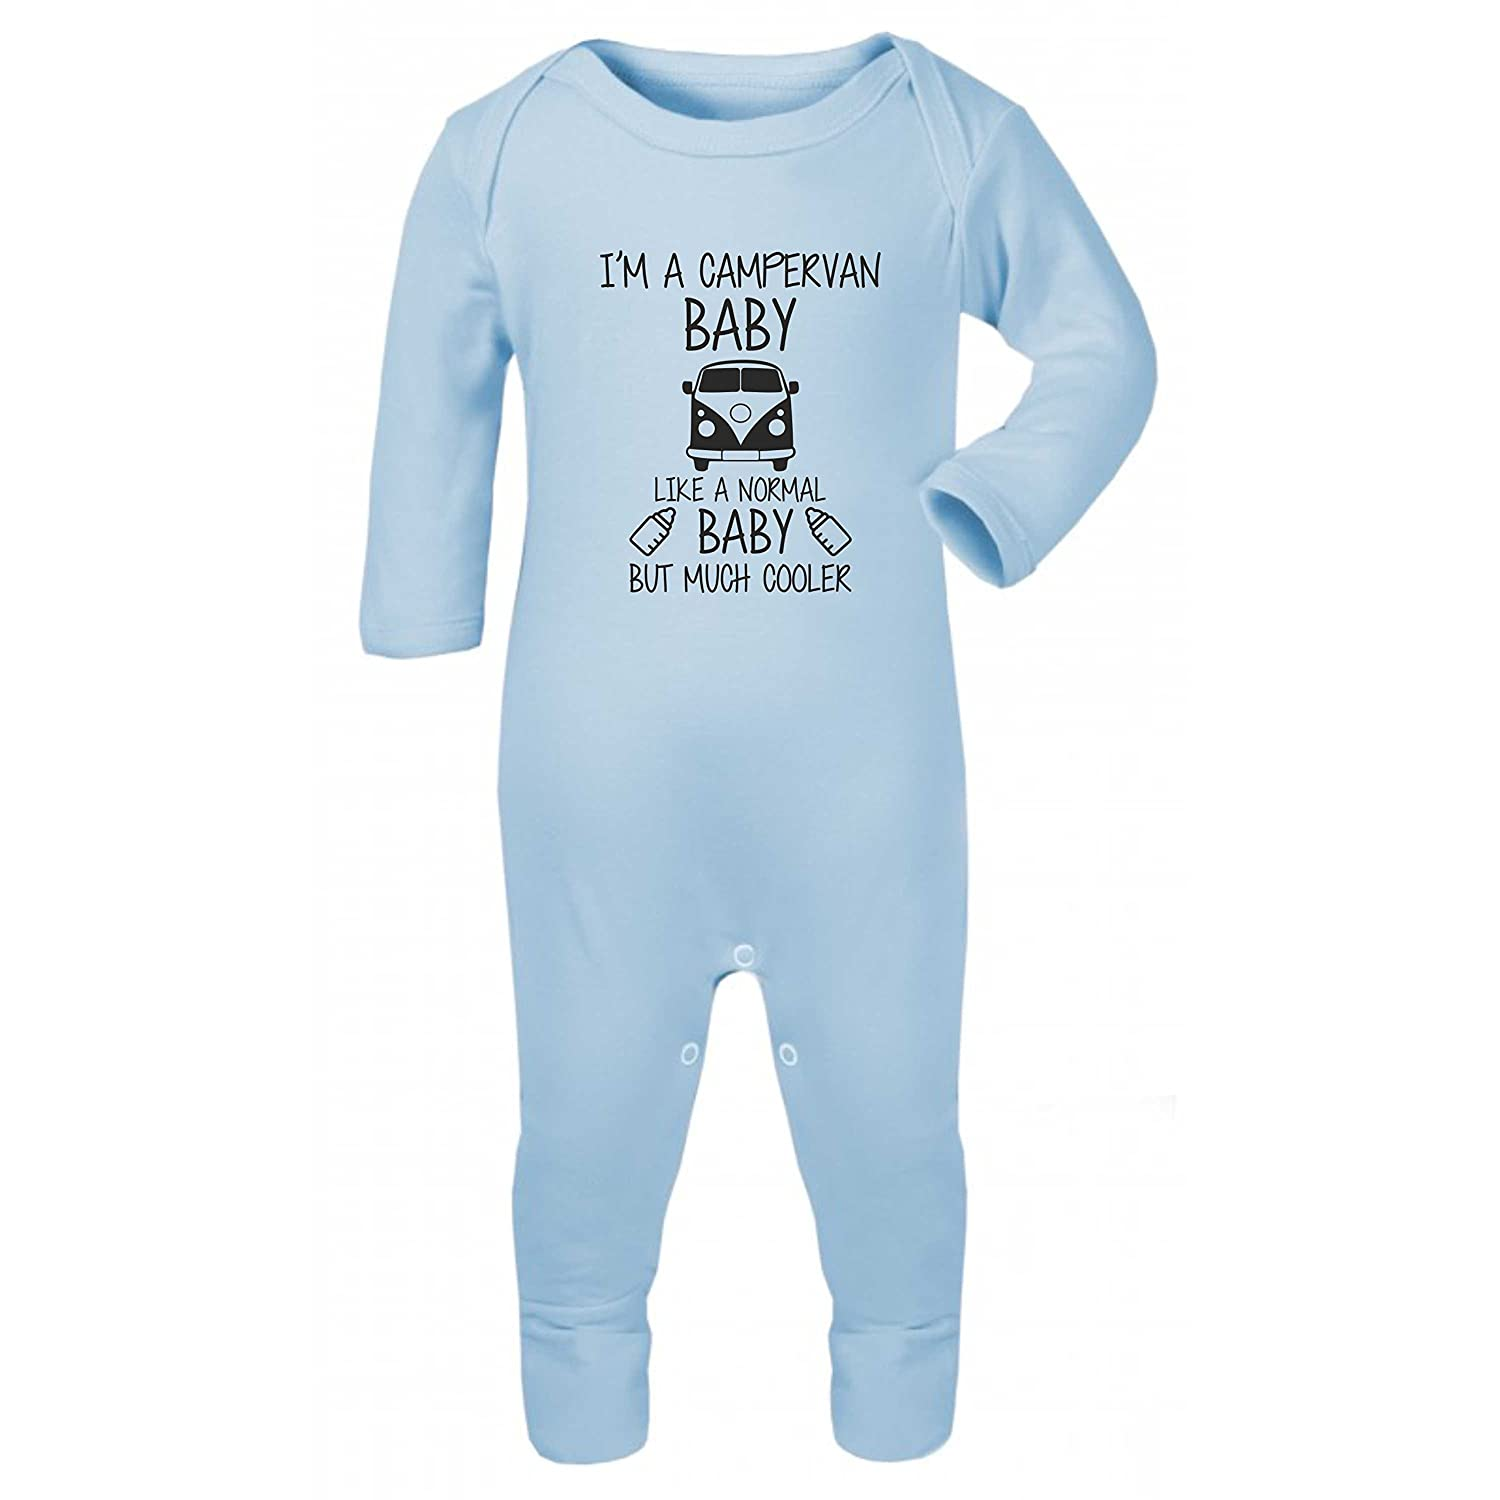 Embroidery and Print City Campervan Baby Funny Baby Rompersuit Sleepsuit